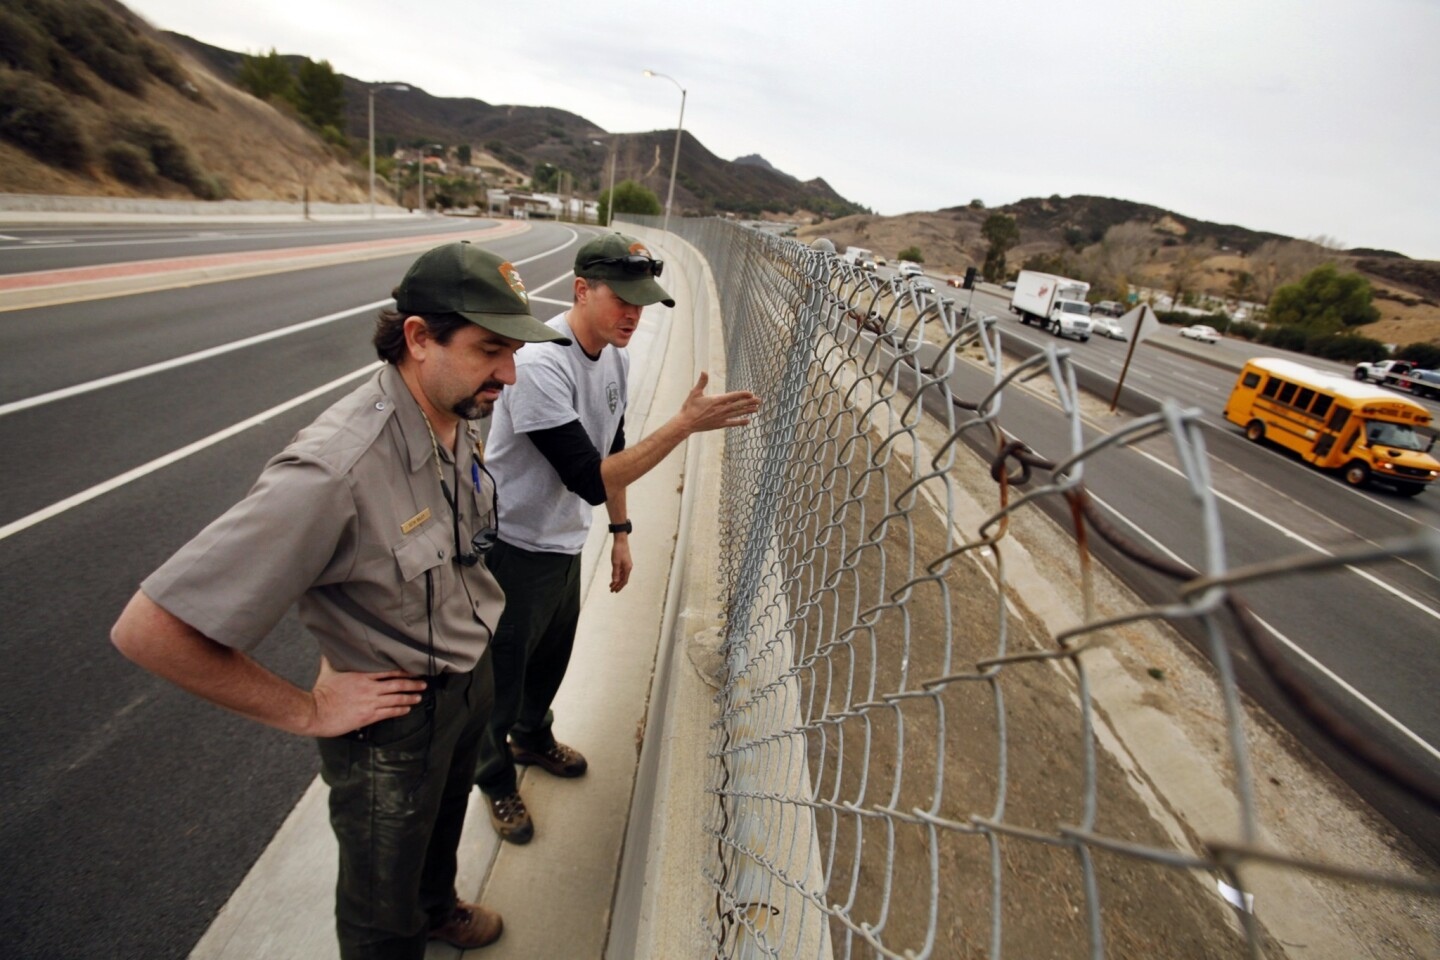 The National Park Service's Seth Riley, left, and Jeff Sikich stand at a wall overlooking the 101 Freeway at Liberty Canyon Road in Agoura Hills, where a mountain lion was fatally struck by a car in October 2013 while attempting to cross. The area is part of a critical wildlife corridor.